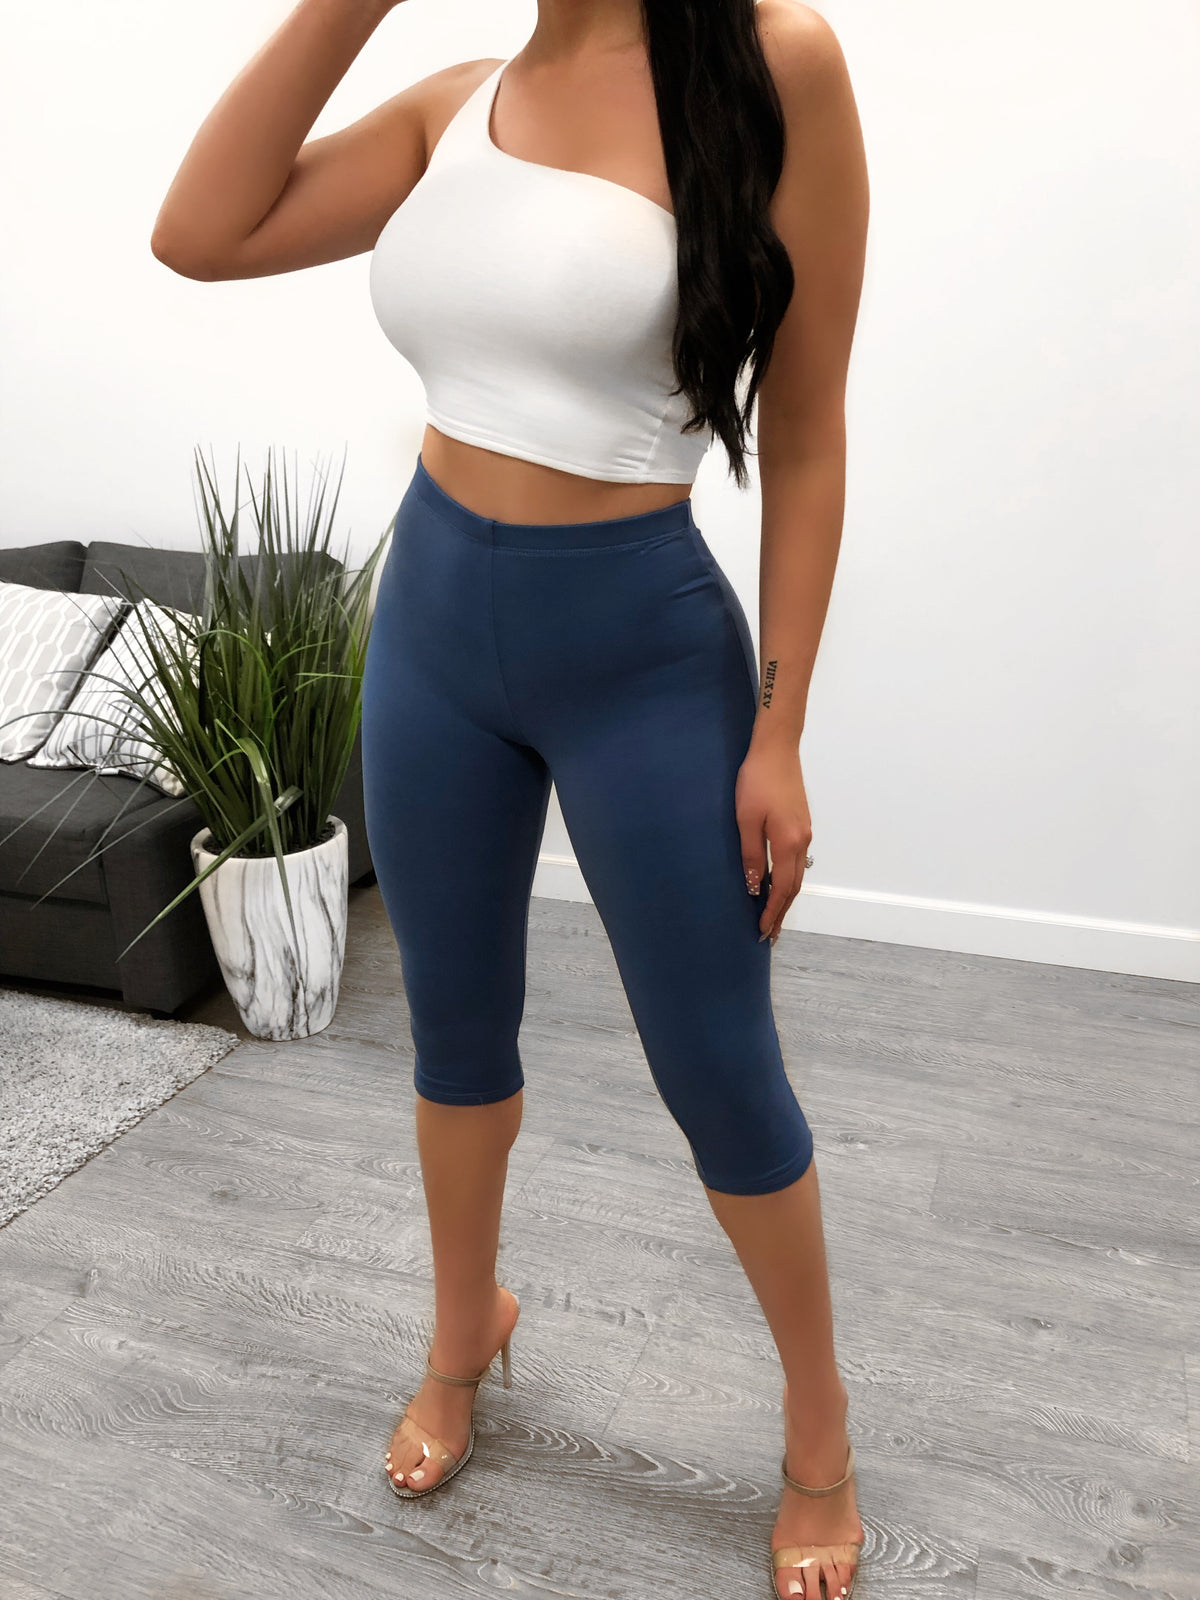 blue high waist black leggings that end under knees